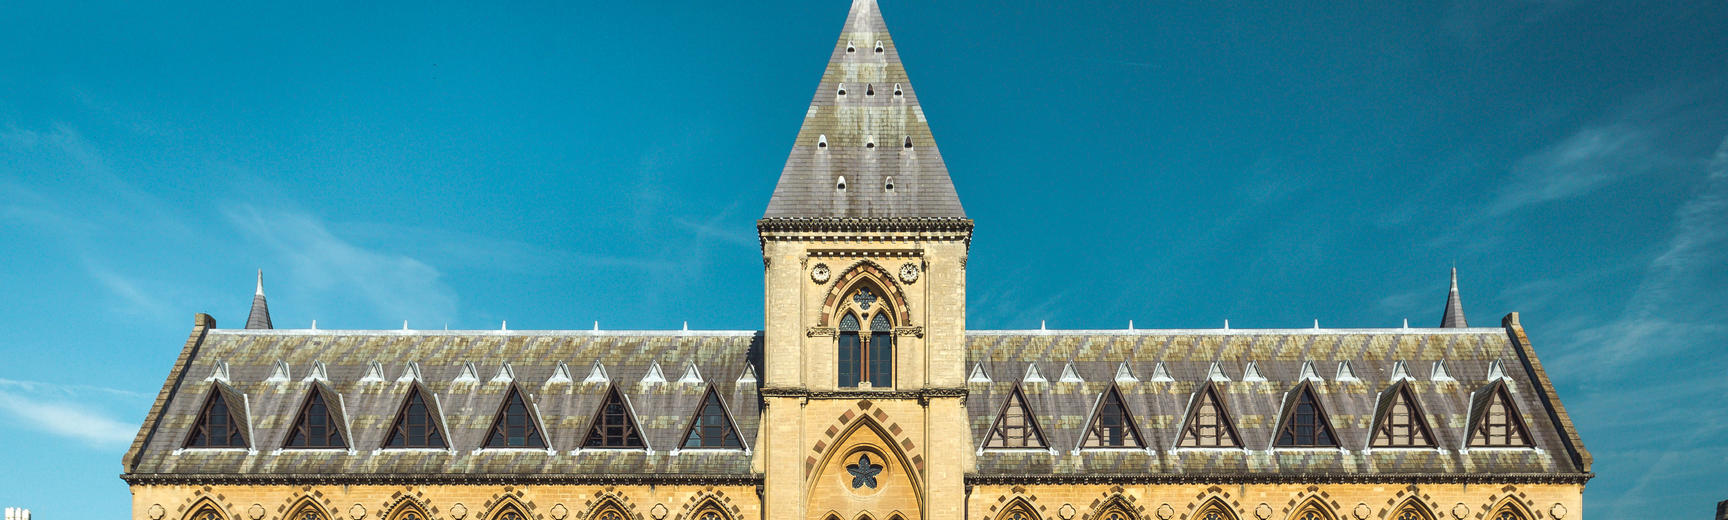 Oxford University Museum of Natural History exterior